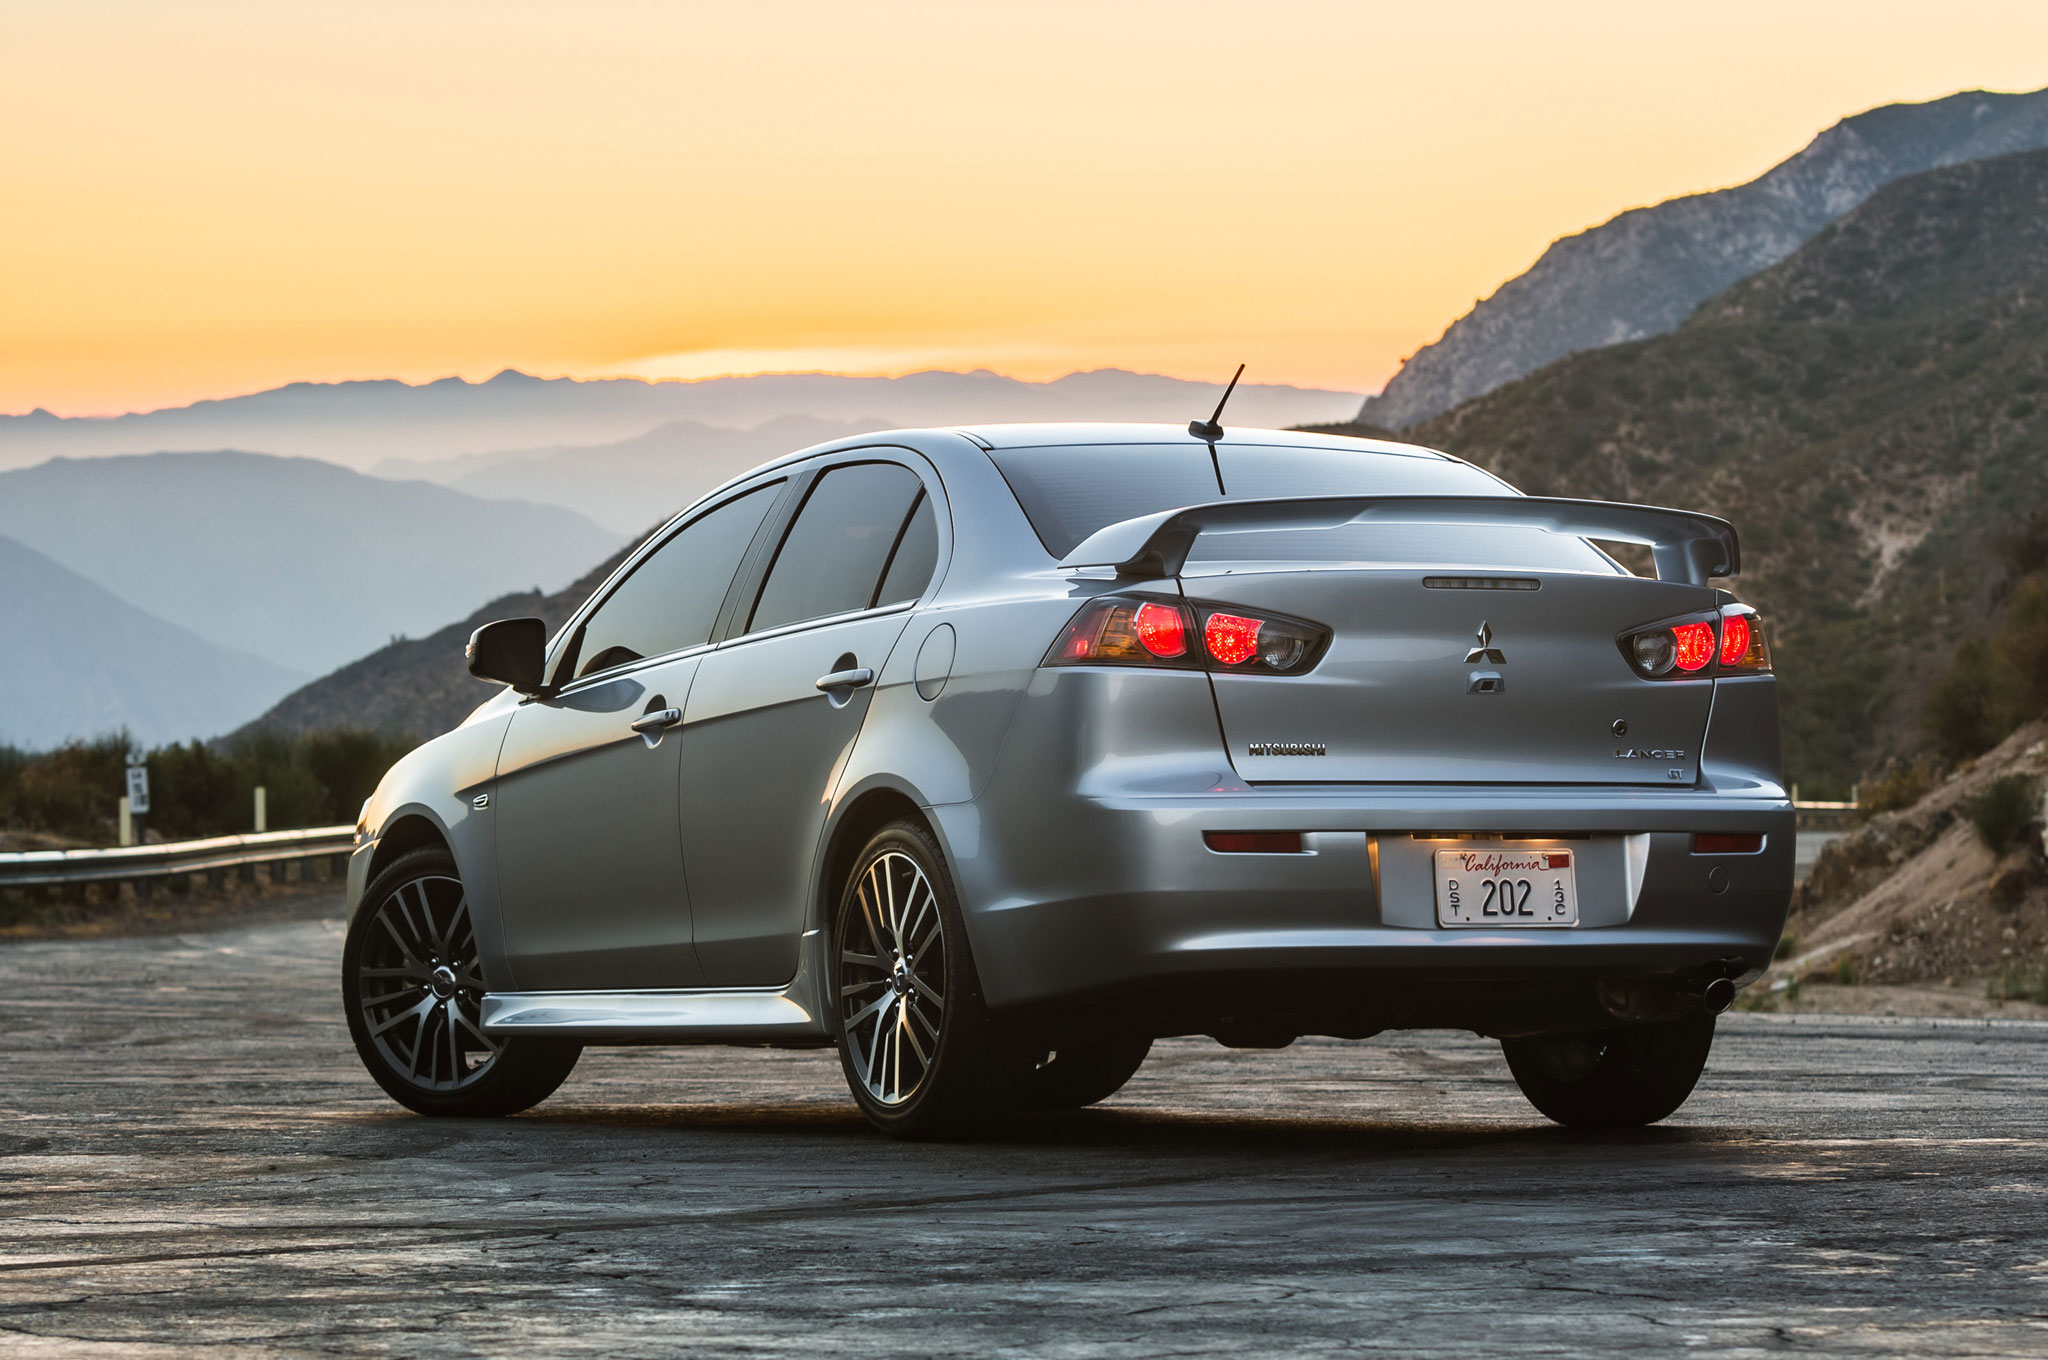 2016 mitsubishi lancer gets new look drops ralliart turbo. Black Bedroom Furniture Sets. Home Design Ideas